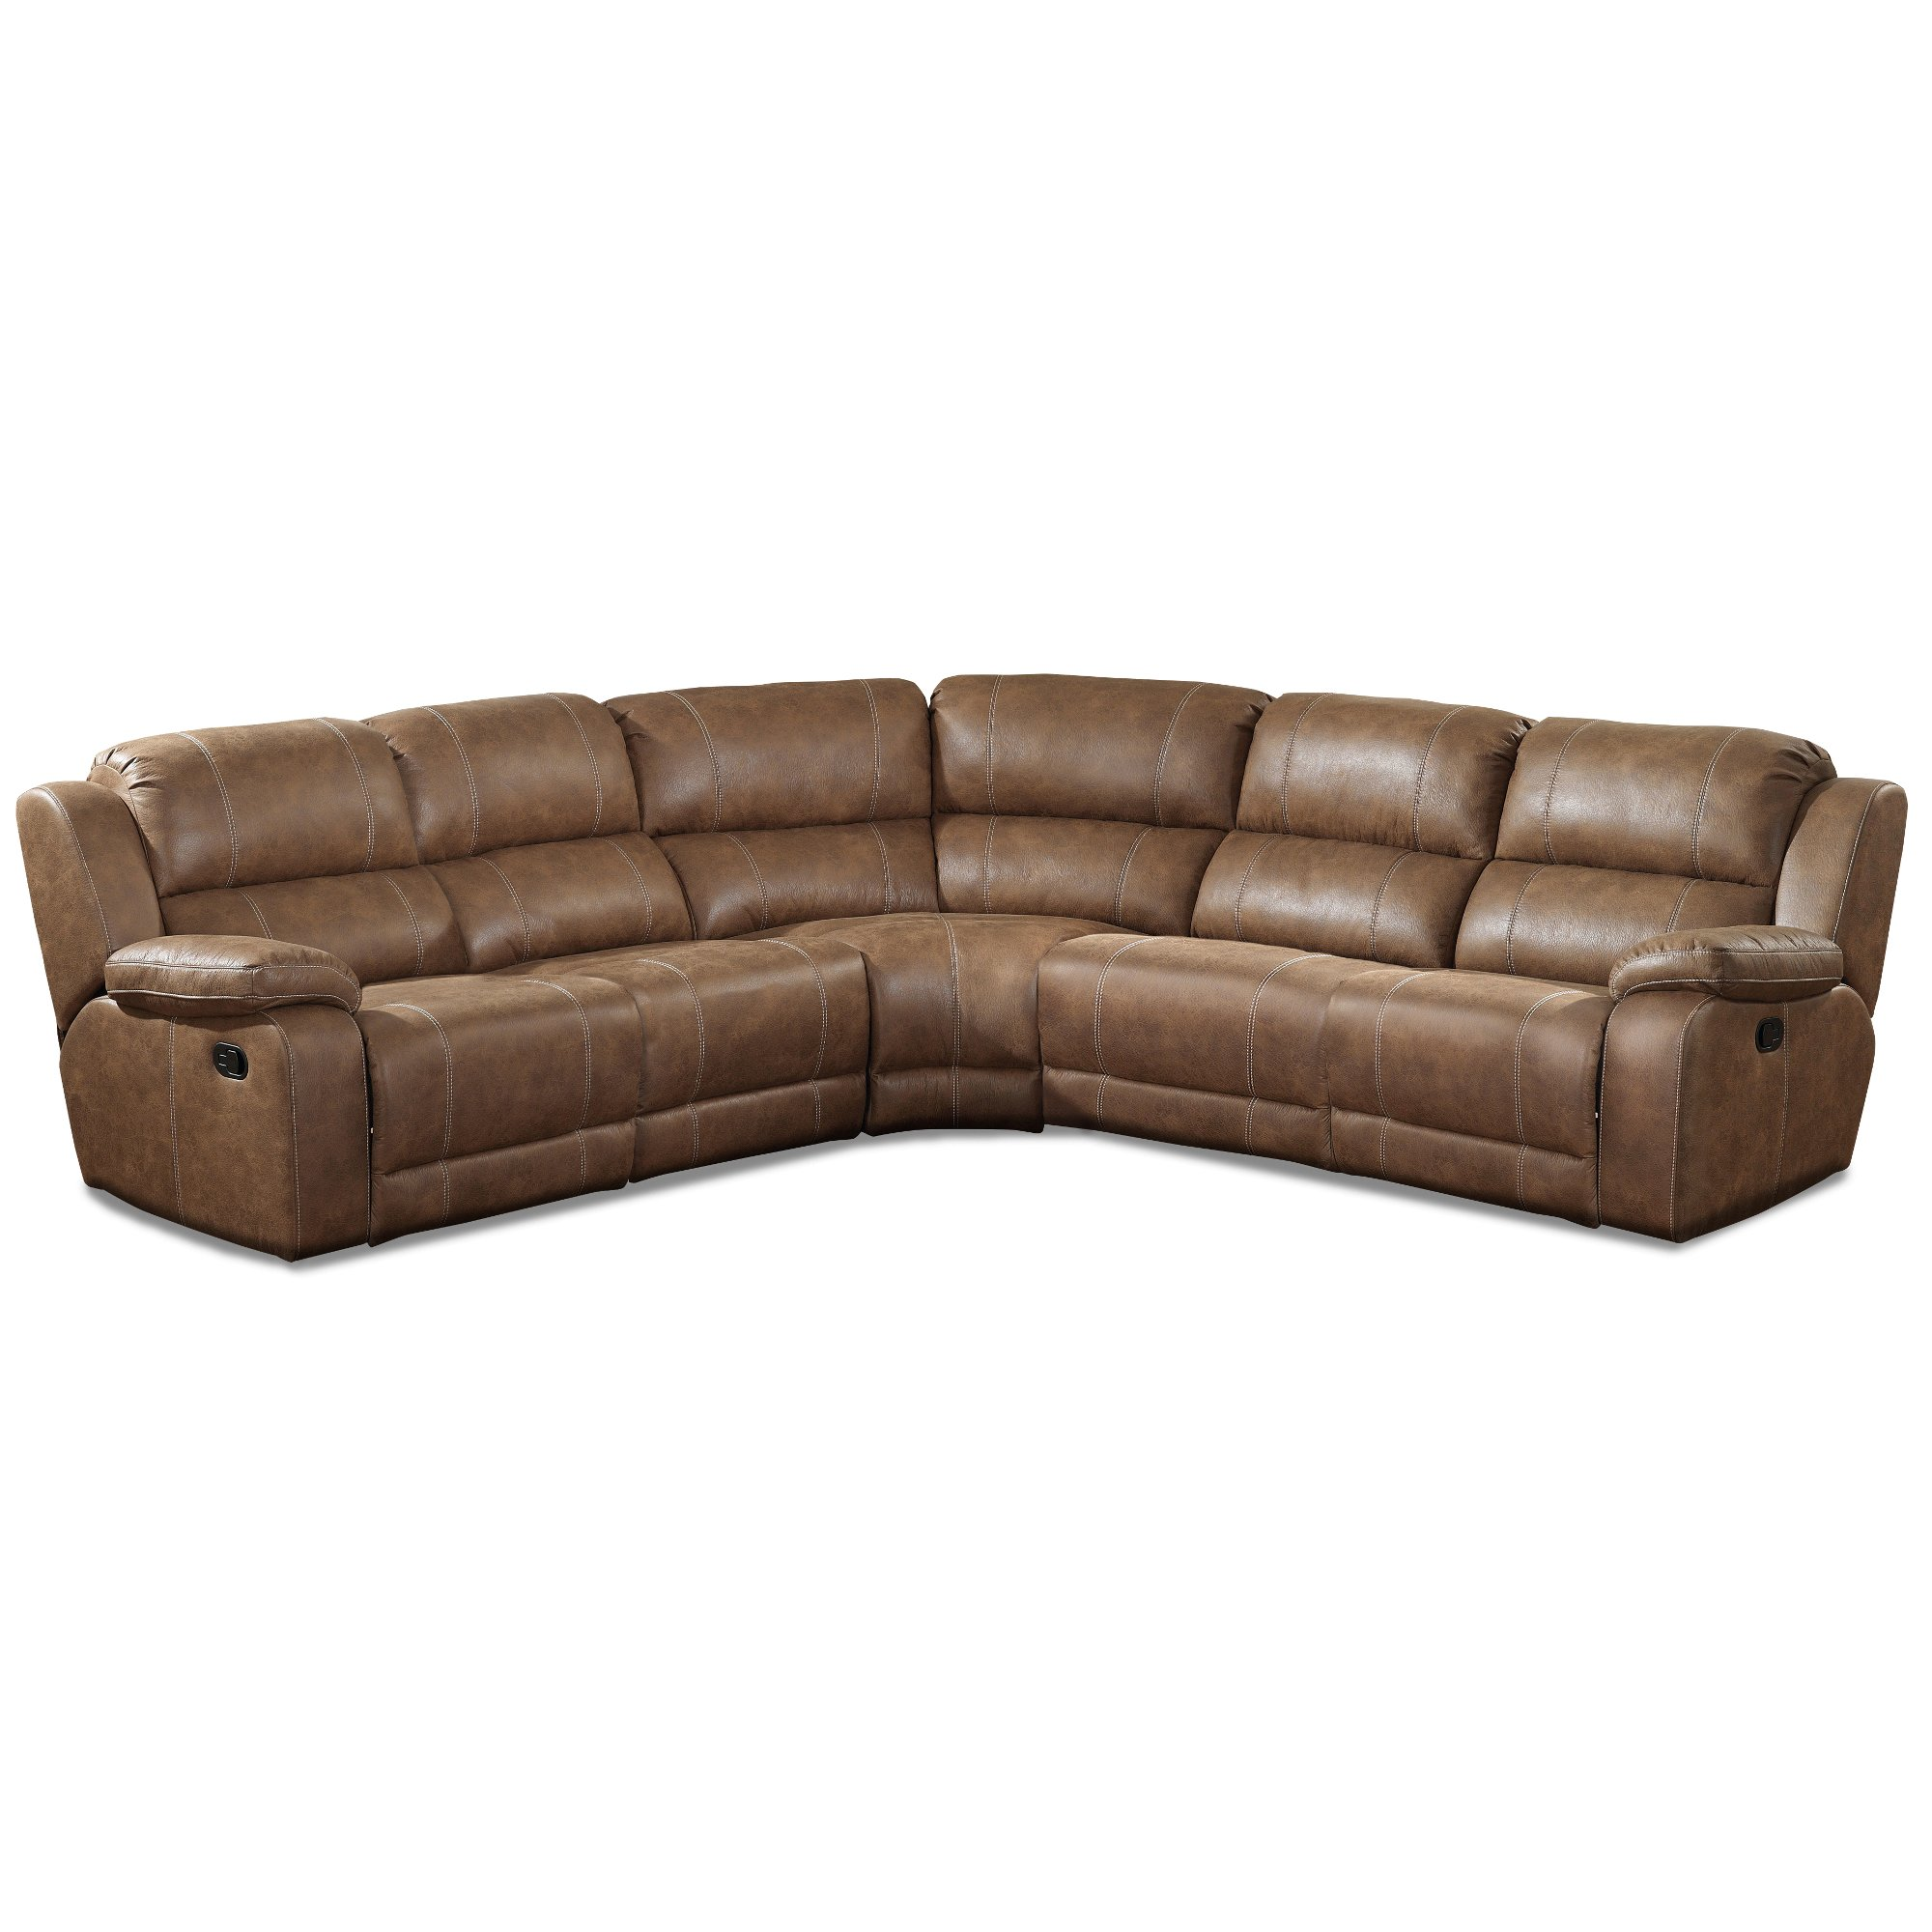 ... Brown 5-Piece Reclining Sectional - Charlotte ...  sc 1 st  RC Willey & Reclining sectional \u0026 leather reclining sectional | RC Willey ... islam-shia.org